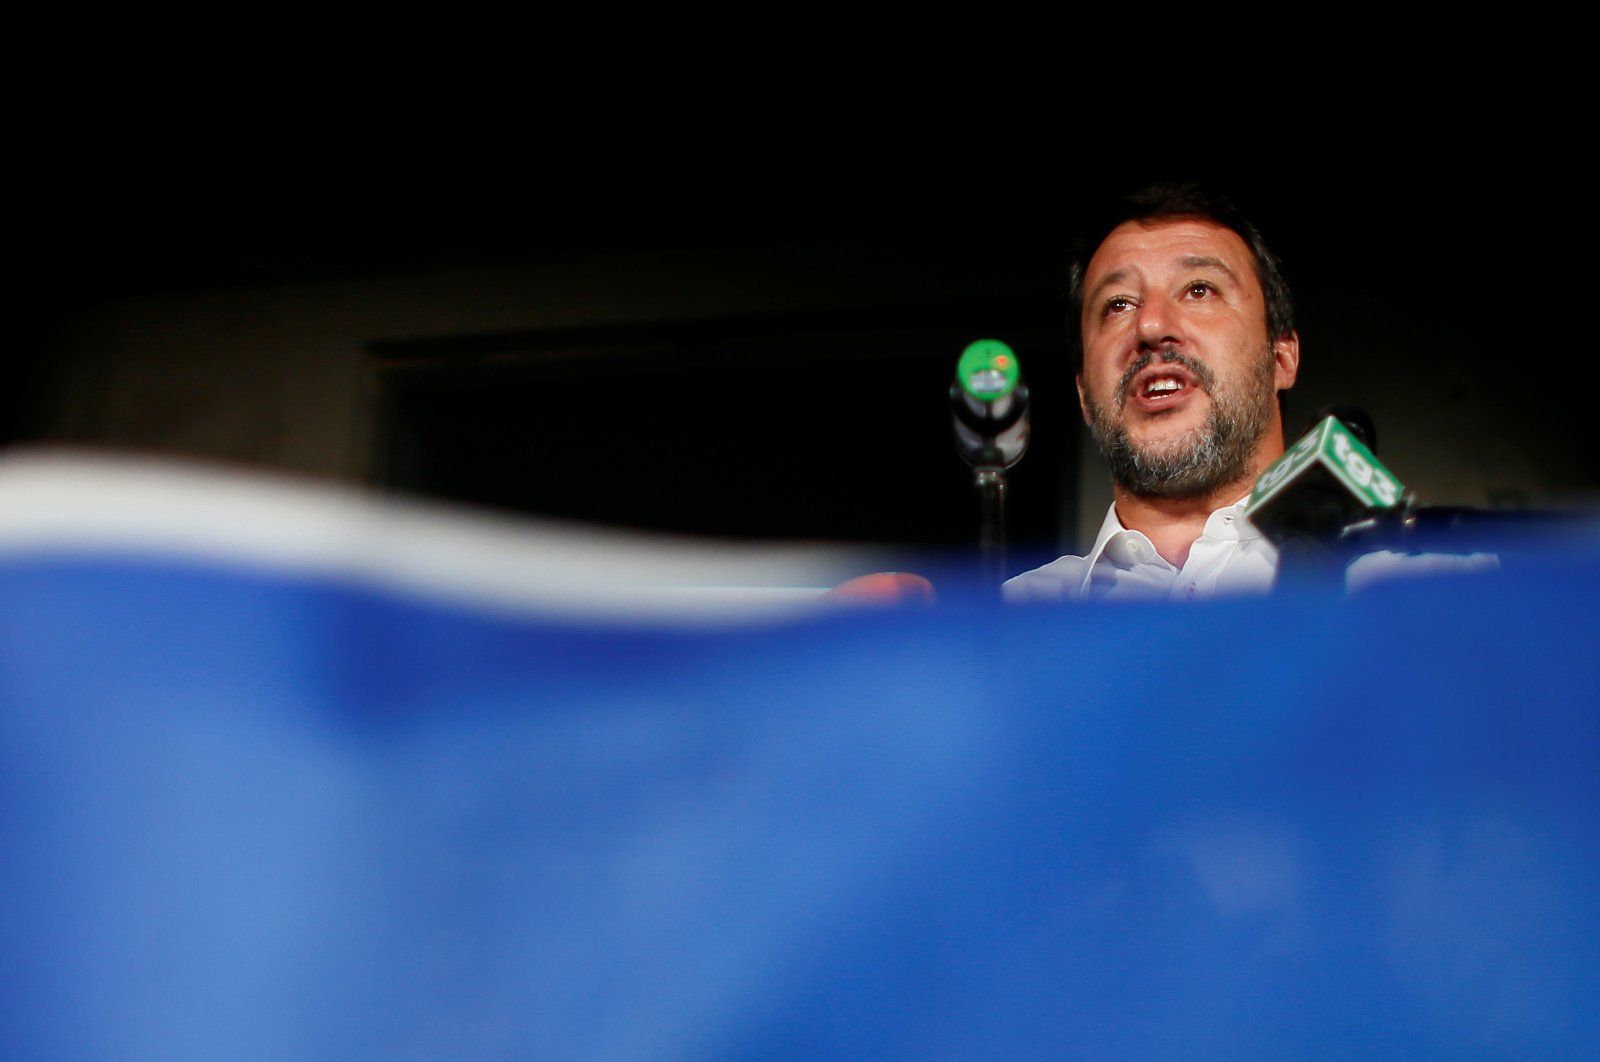 Leader of Italy's far-right League party Matteo Salvini addresses the media on the results of regional elections, in Milan, Italy, Sept. 21, 2020. (Reuters Photo)